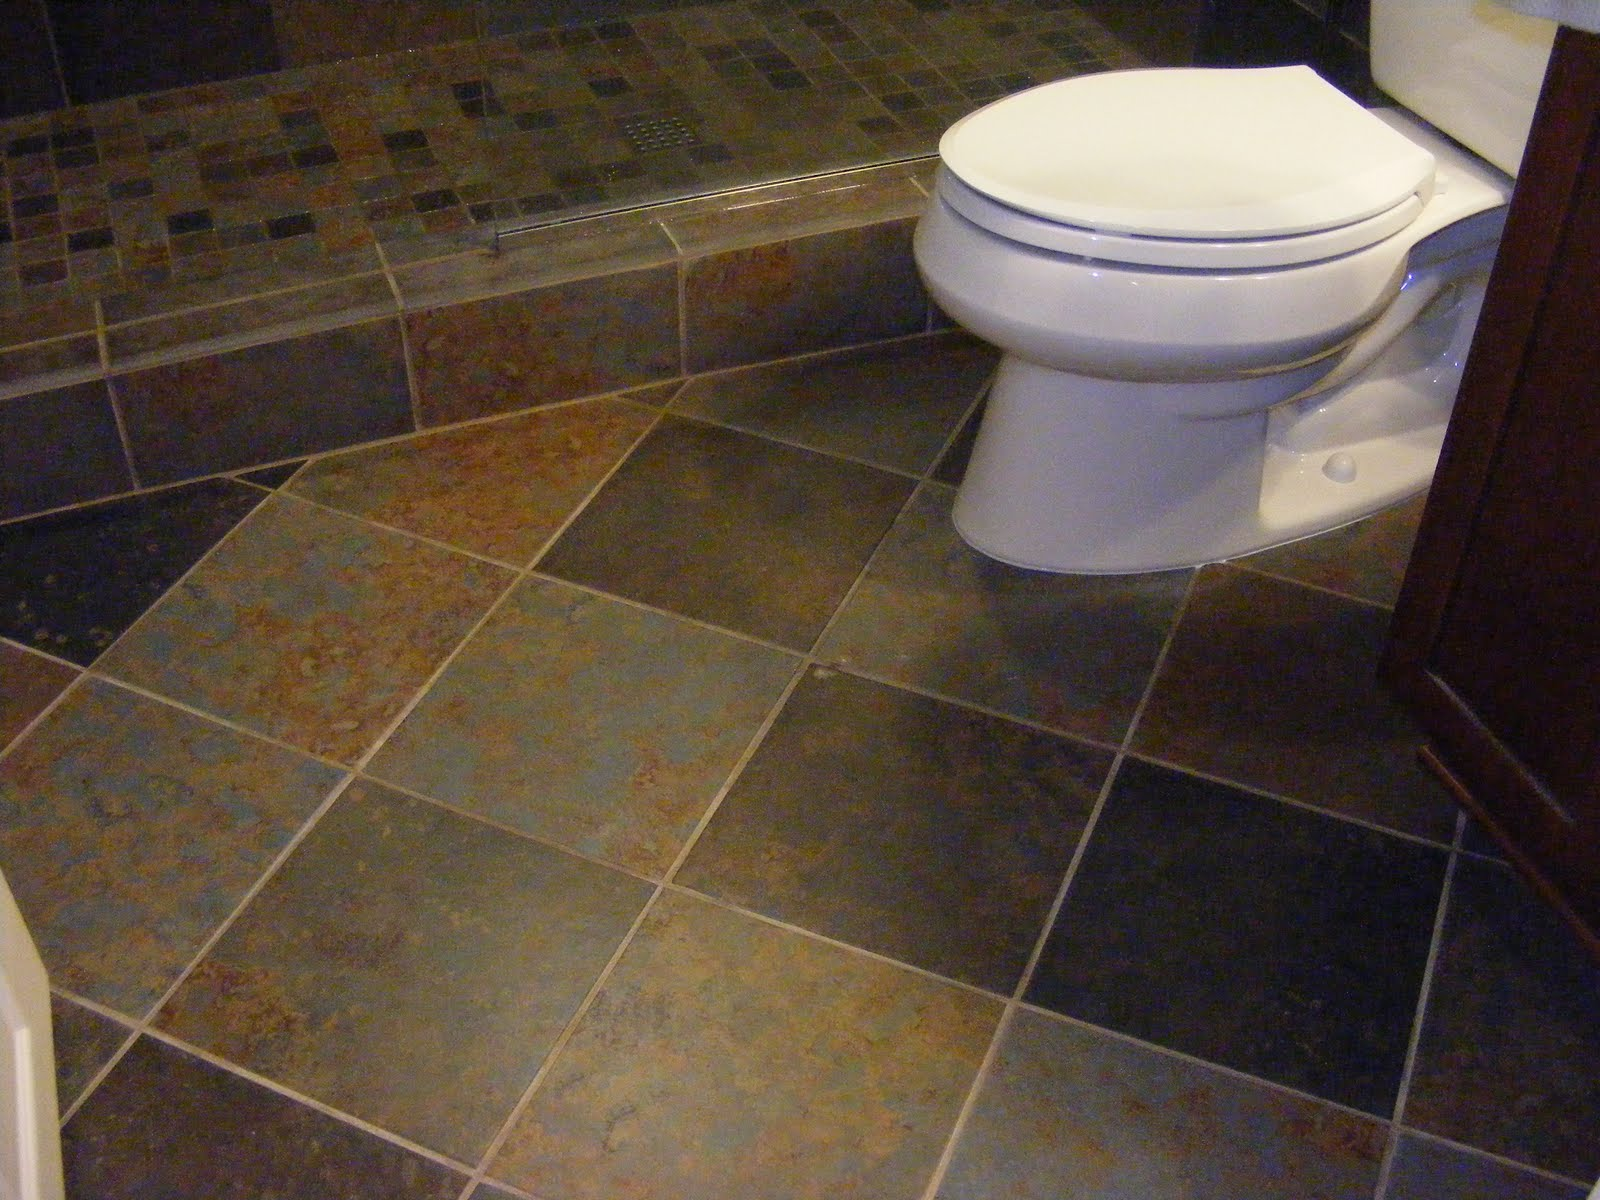 Marvelous Design Of The Grey Tile Floor Ideas Added With White Toilets And Brown Wooden Cabinets Ideas